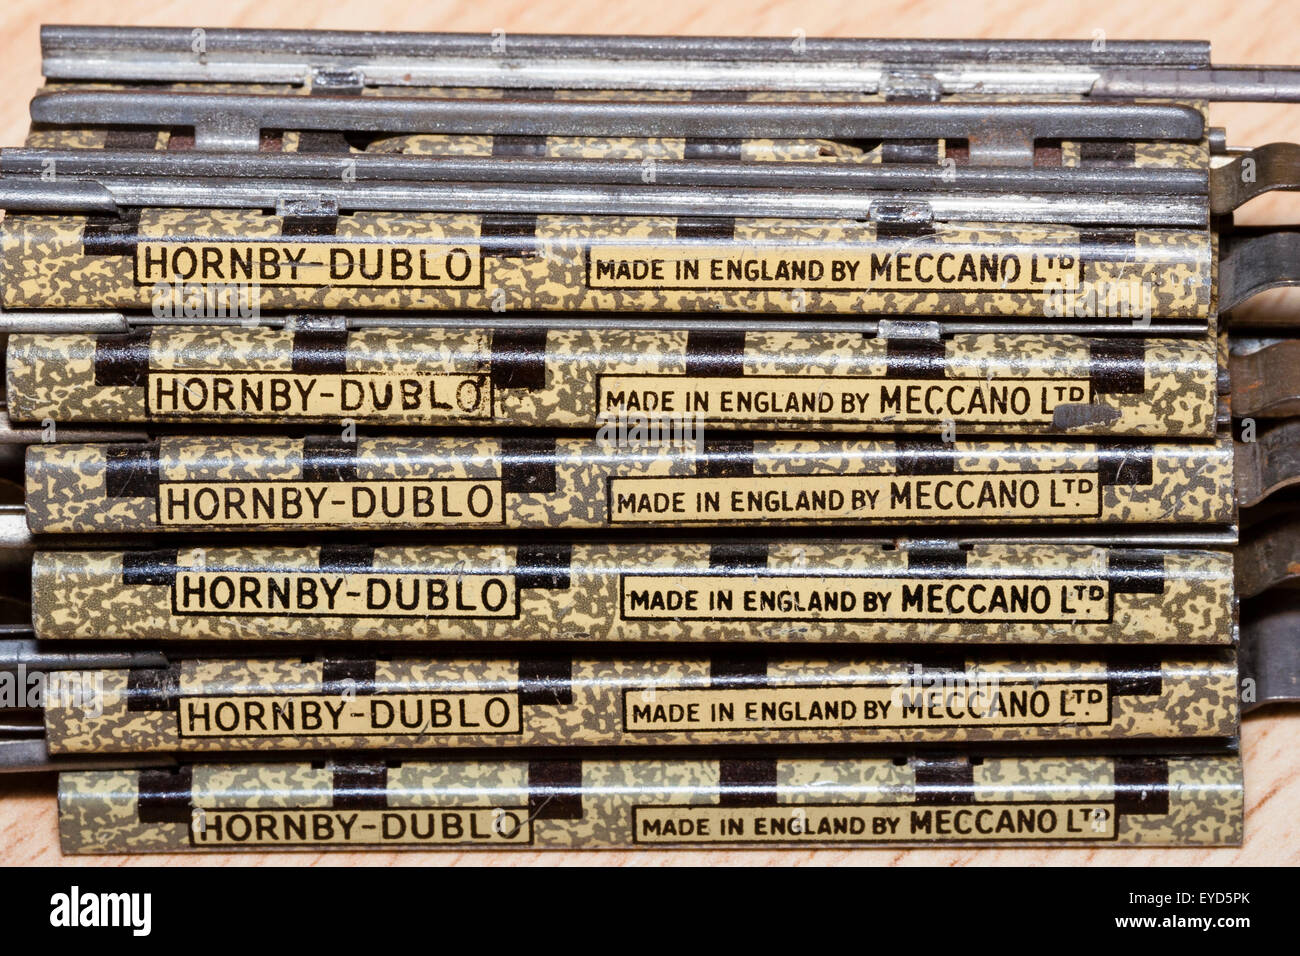 Toy train track, Hornby-Dublo, Meccano 1950's, Three rail track sections stacked on top of each other with 'made Stock Photo